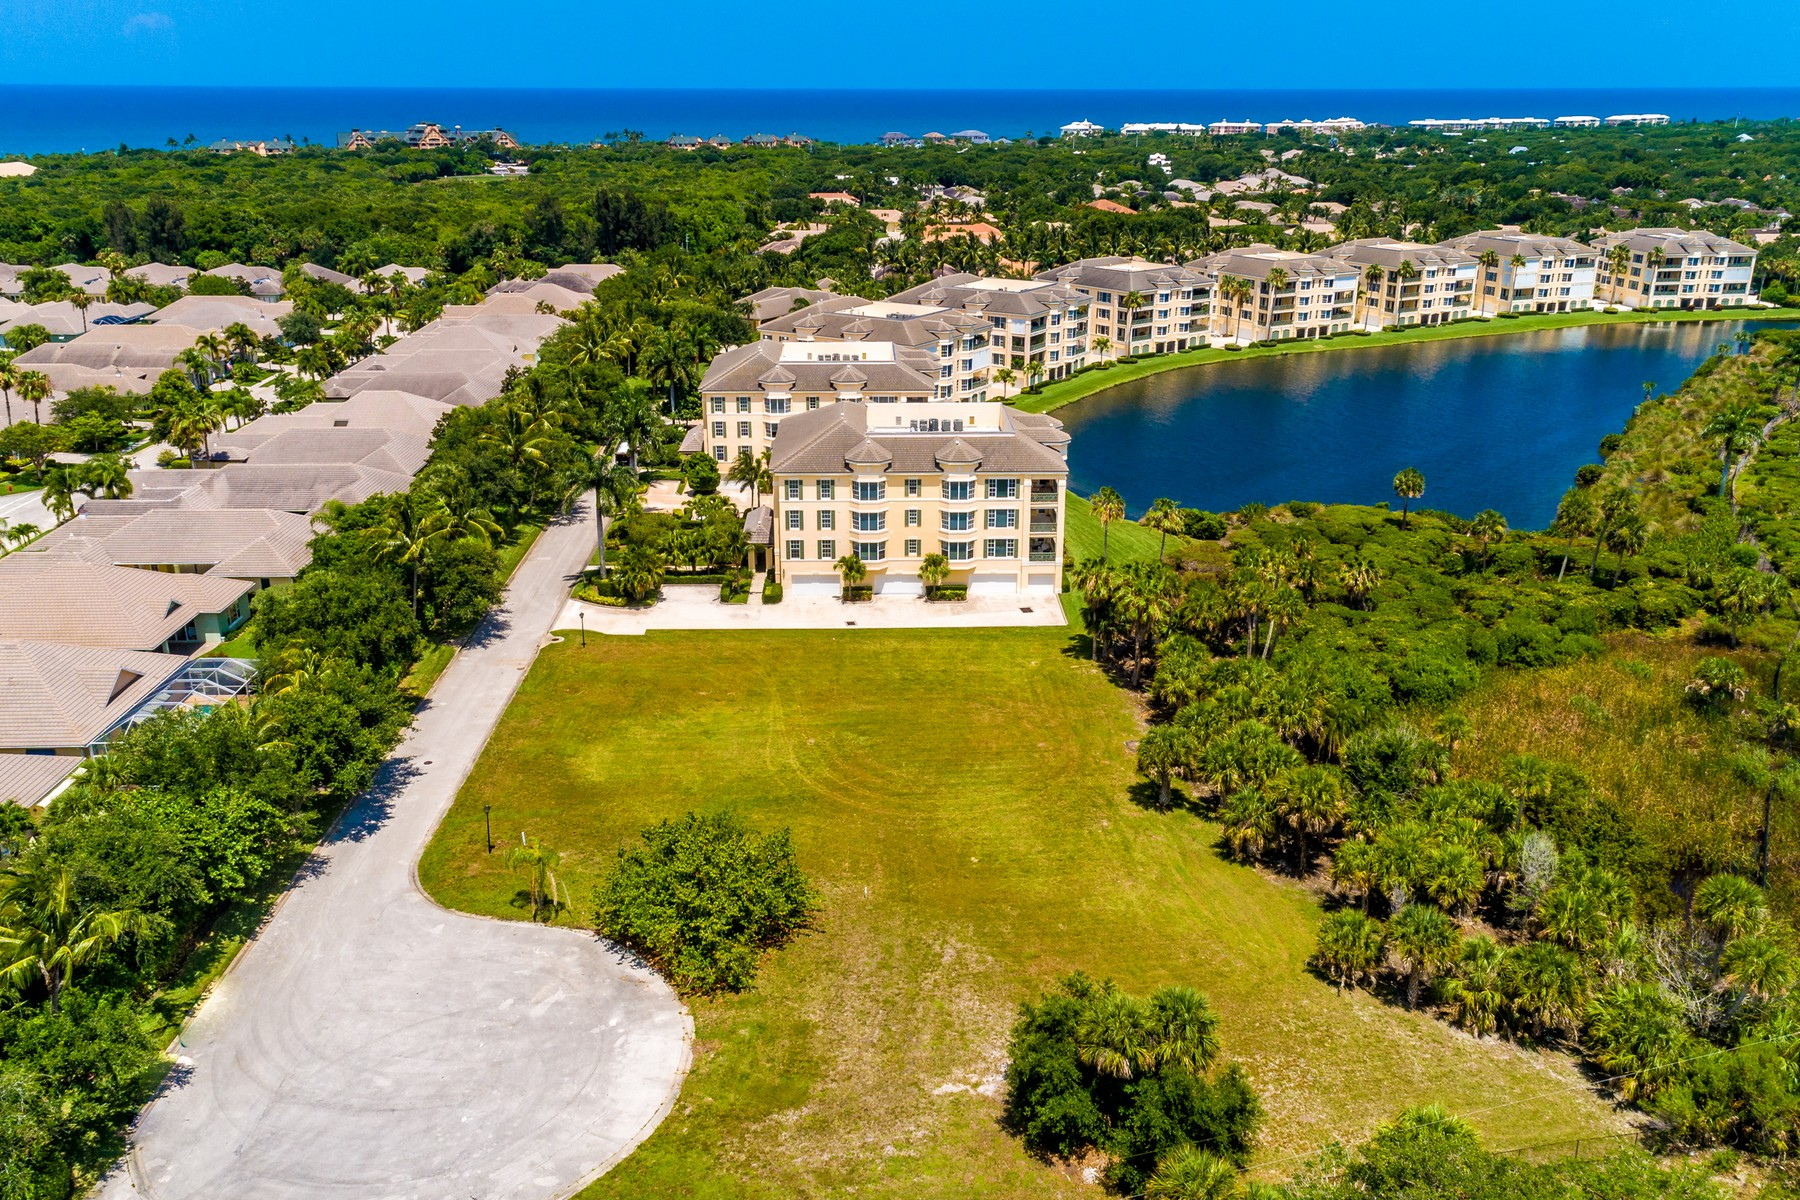 Property のために 売買 アット Spectacular Direct Riverfront Condo Sites 0 Somerset Bay Lane Vero Beach, フロリダ 32963 アメリカ